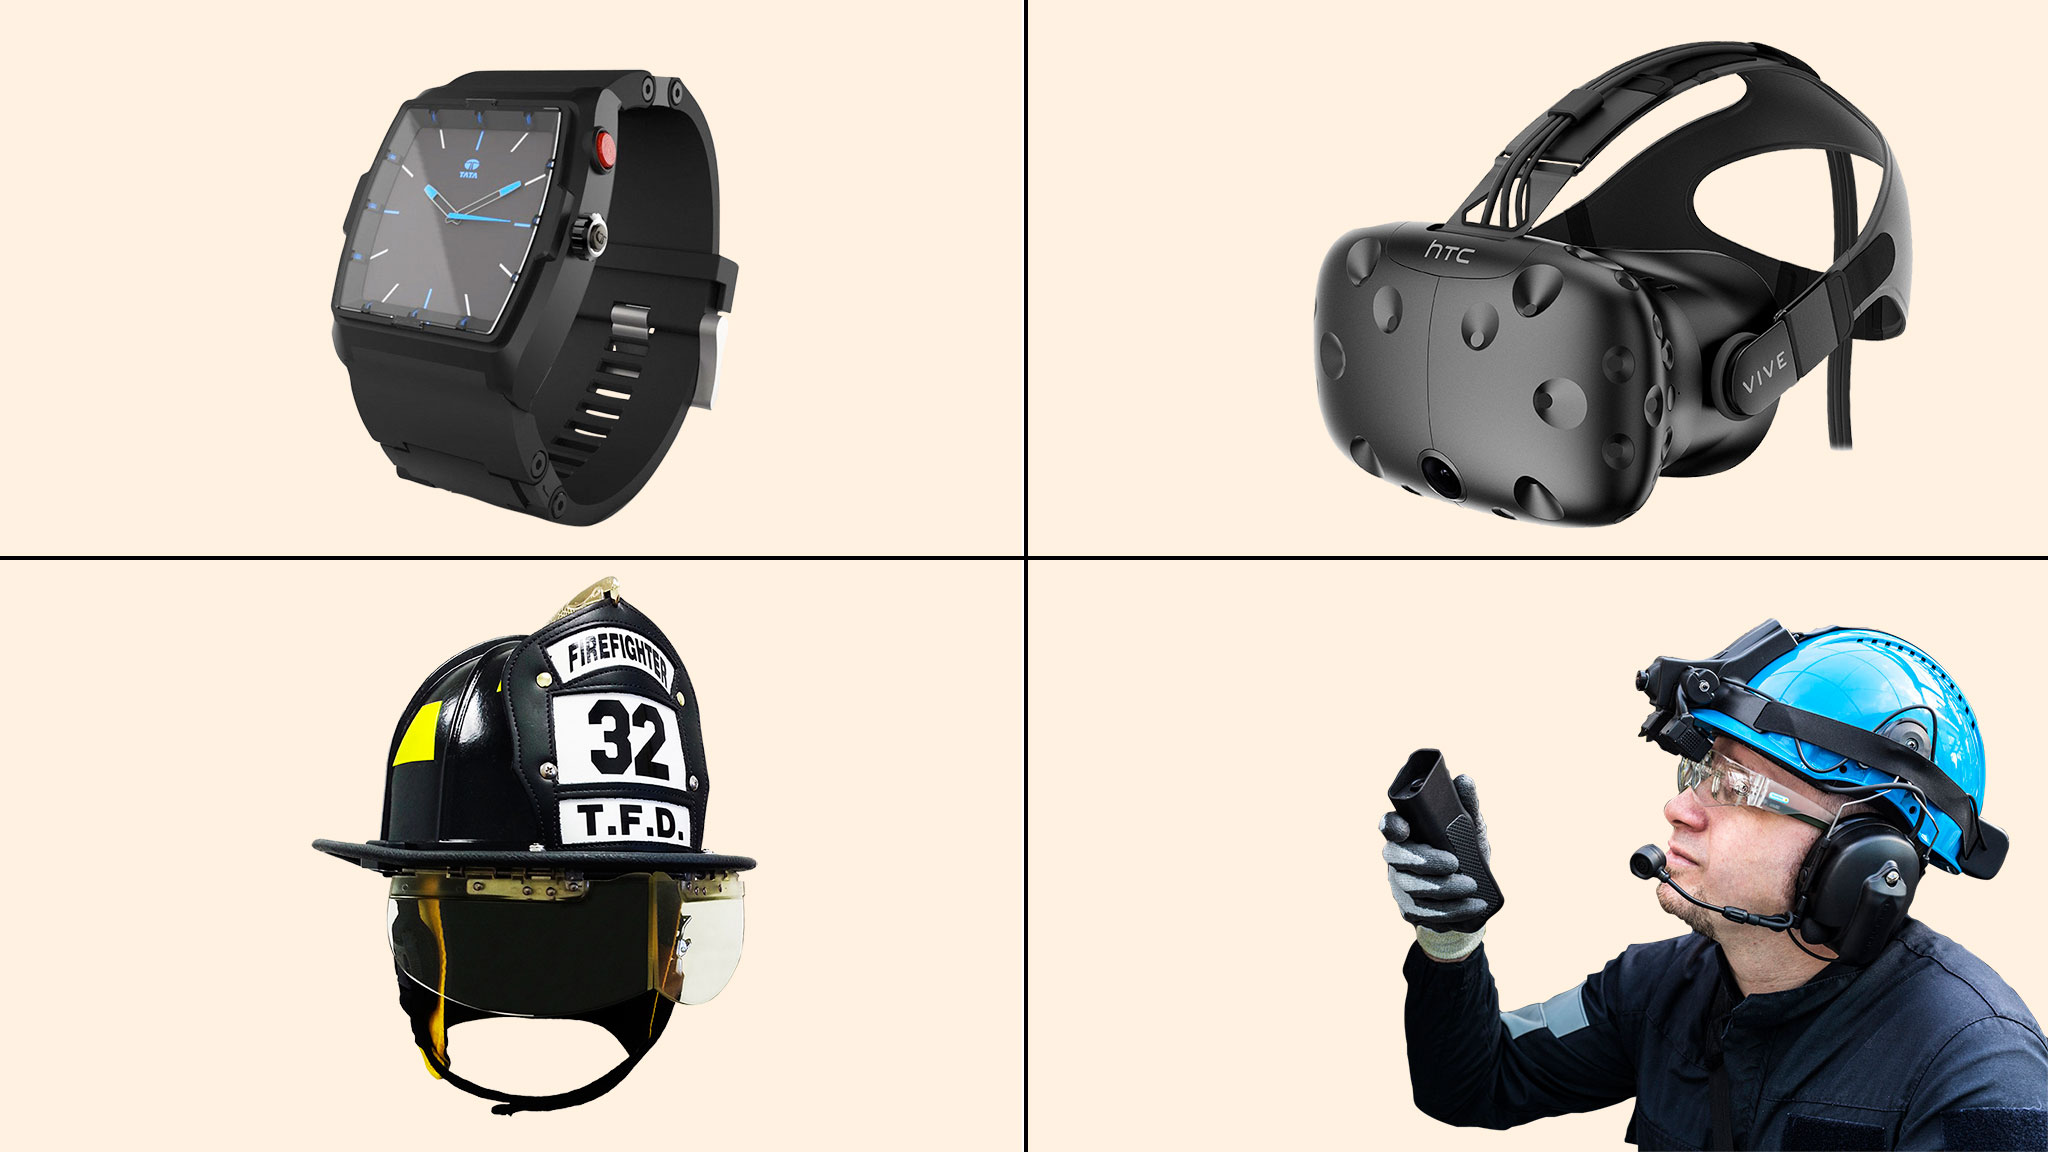 Wearable devices aim to reduce workplace accidents